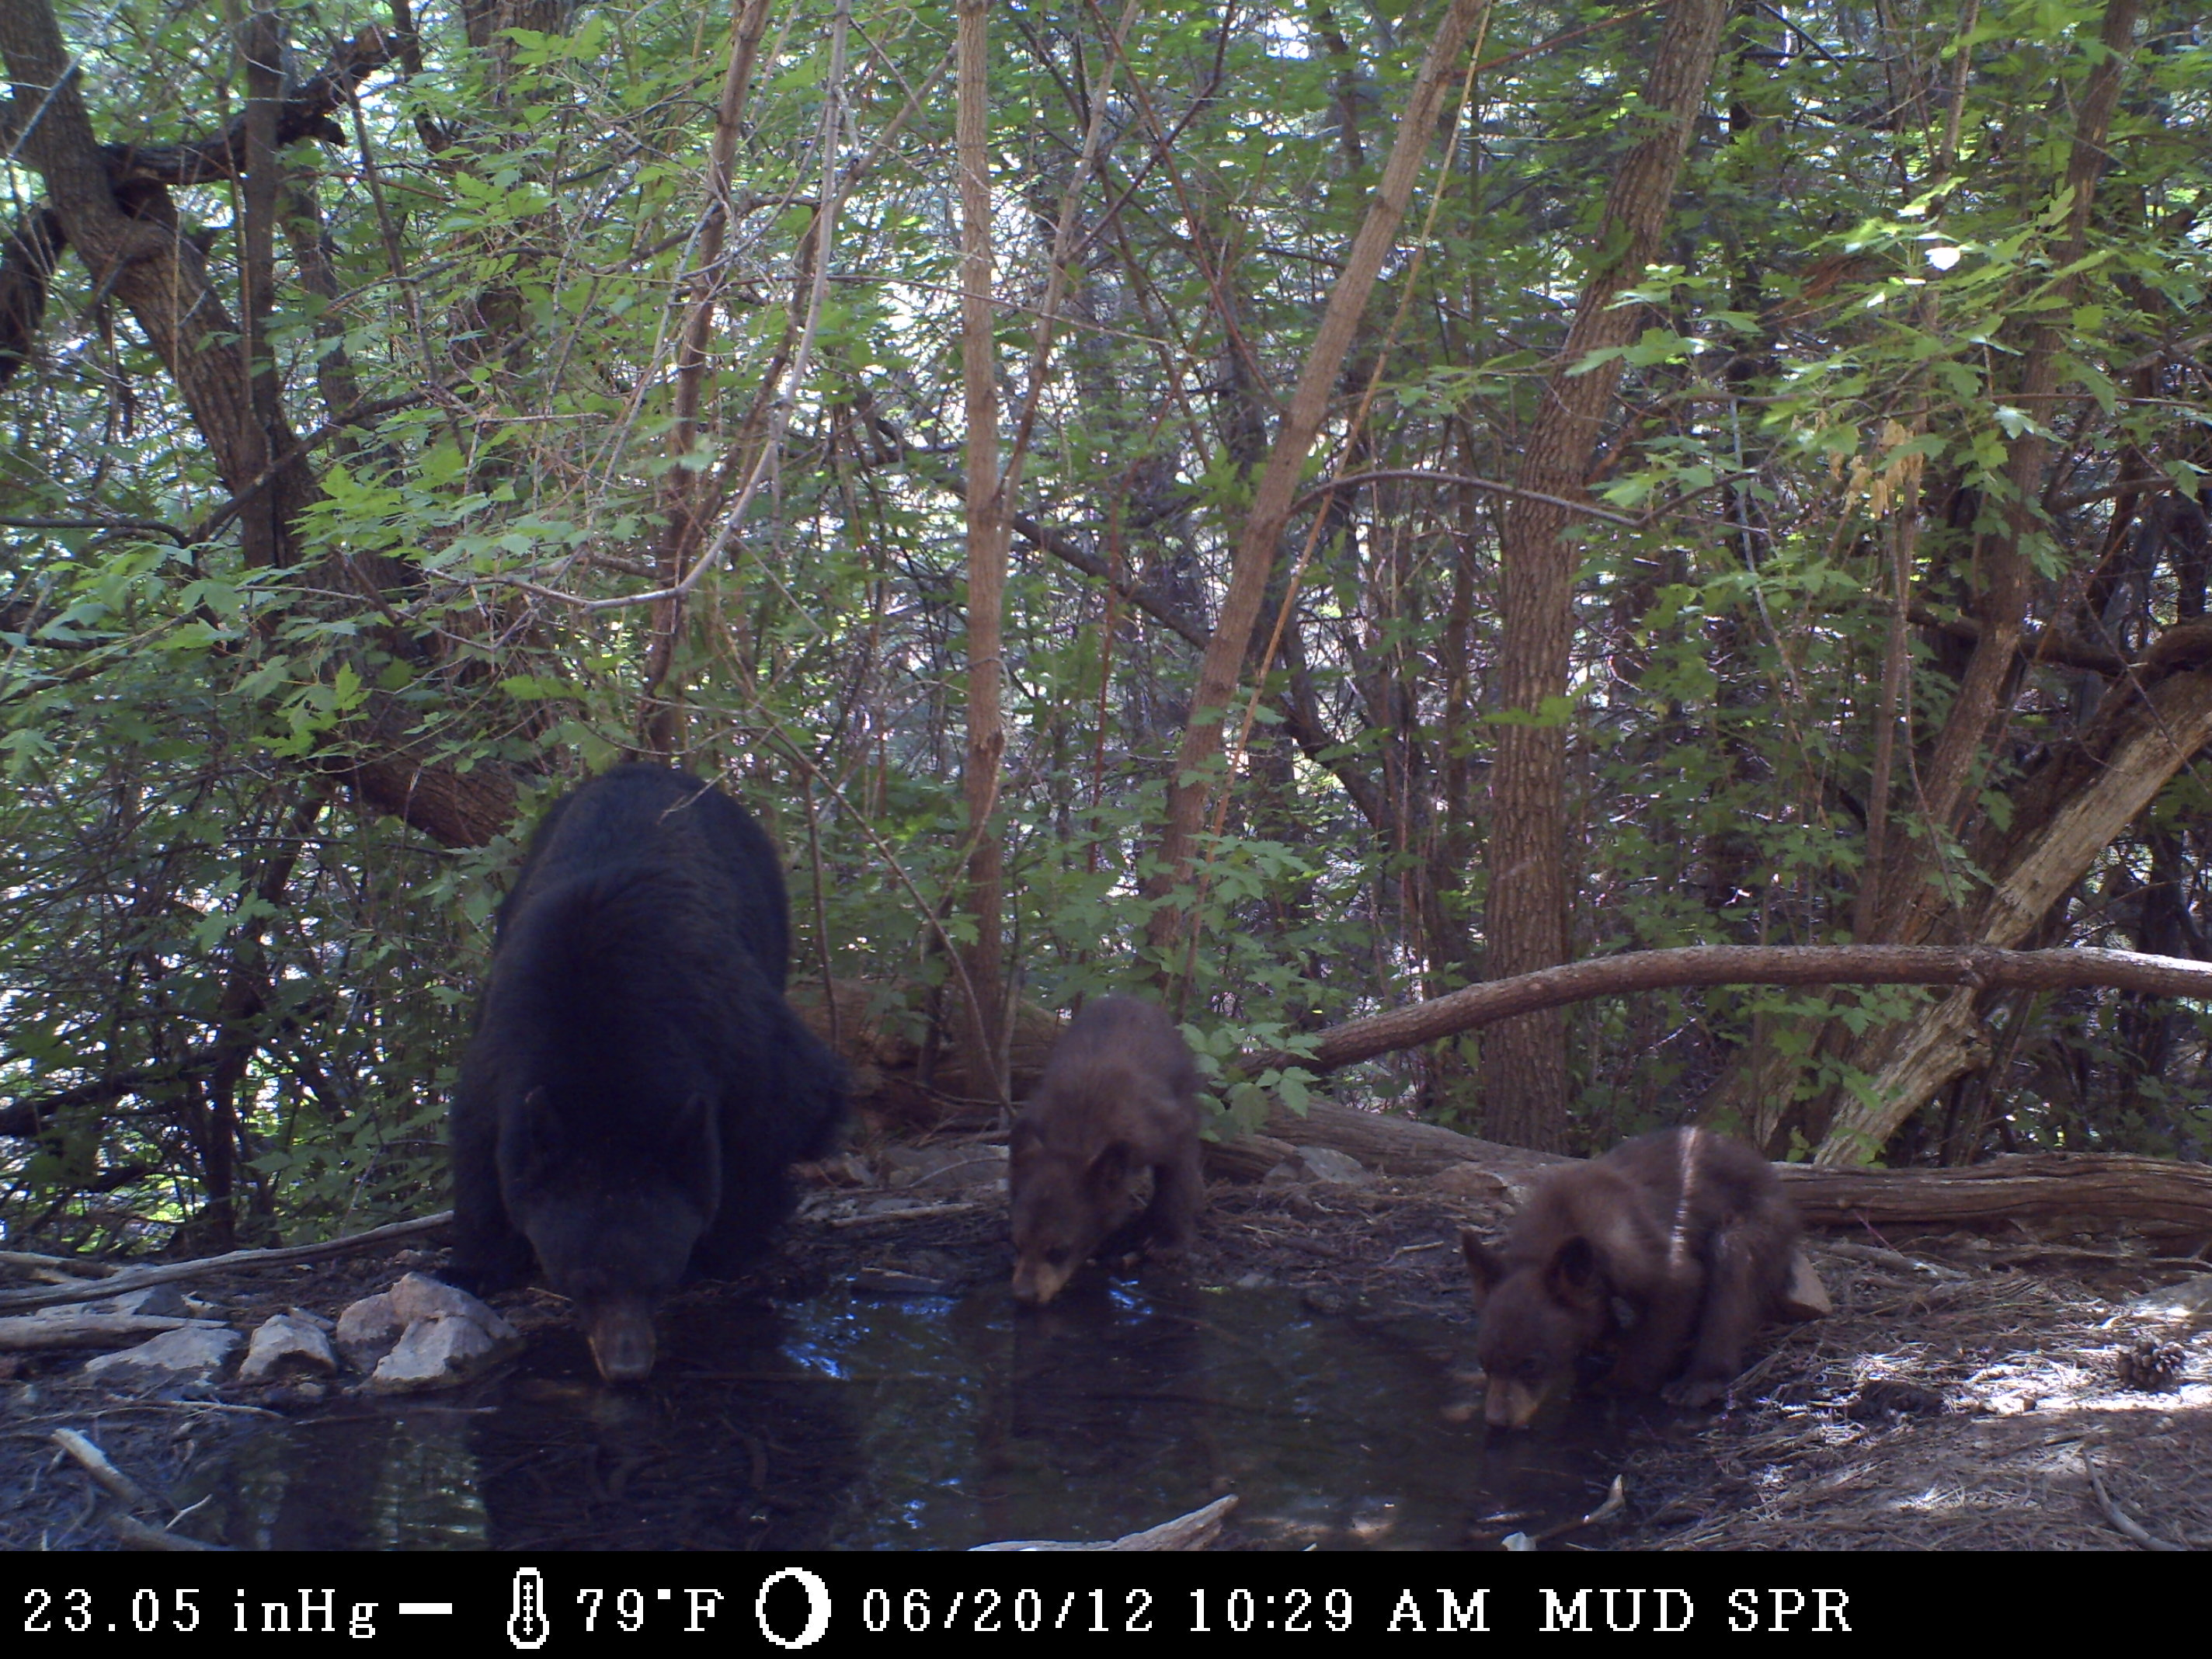 Bears visiting a spring in the Sandia Mountain region.